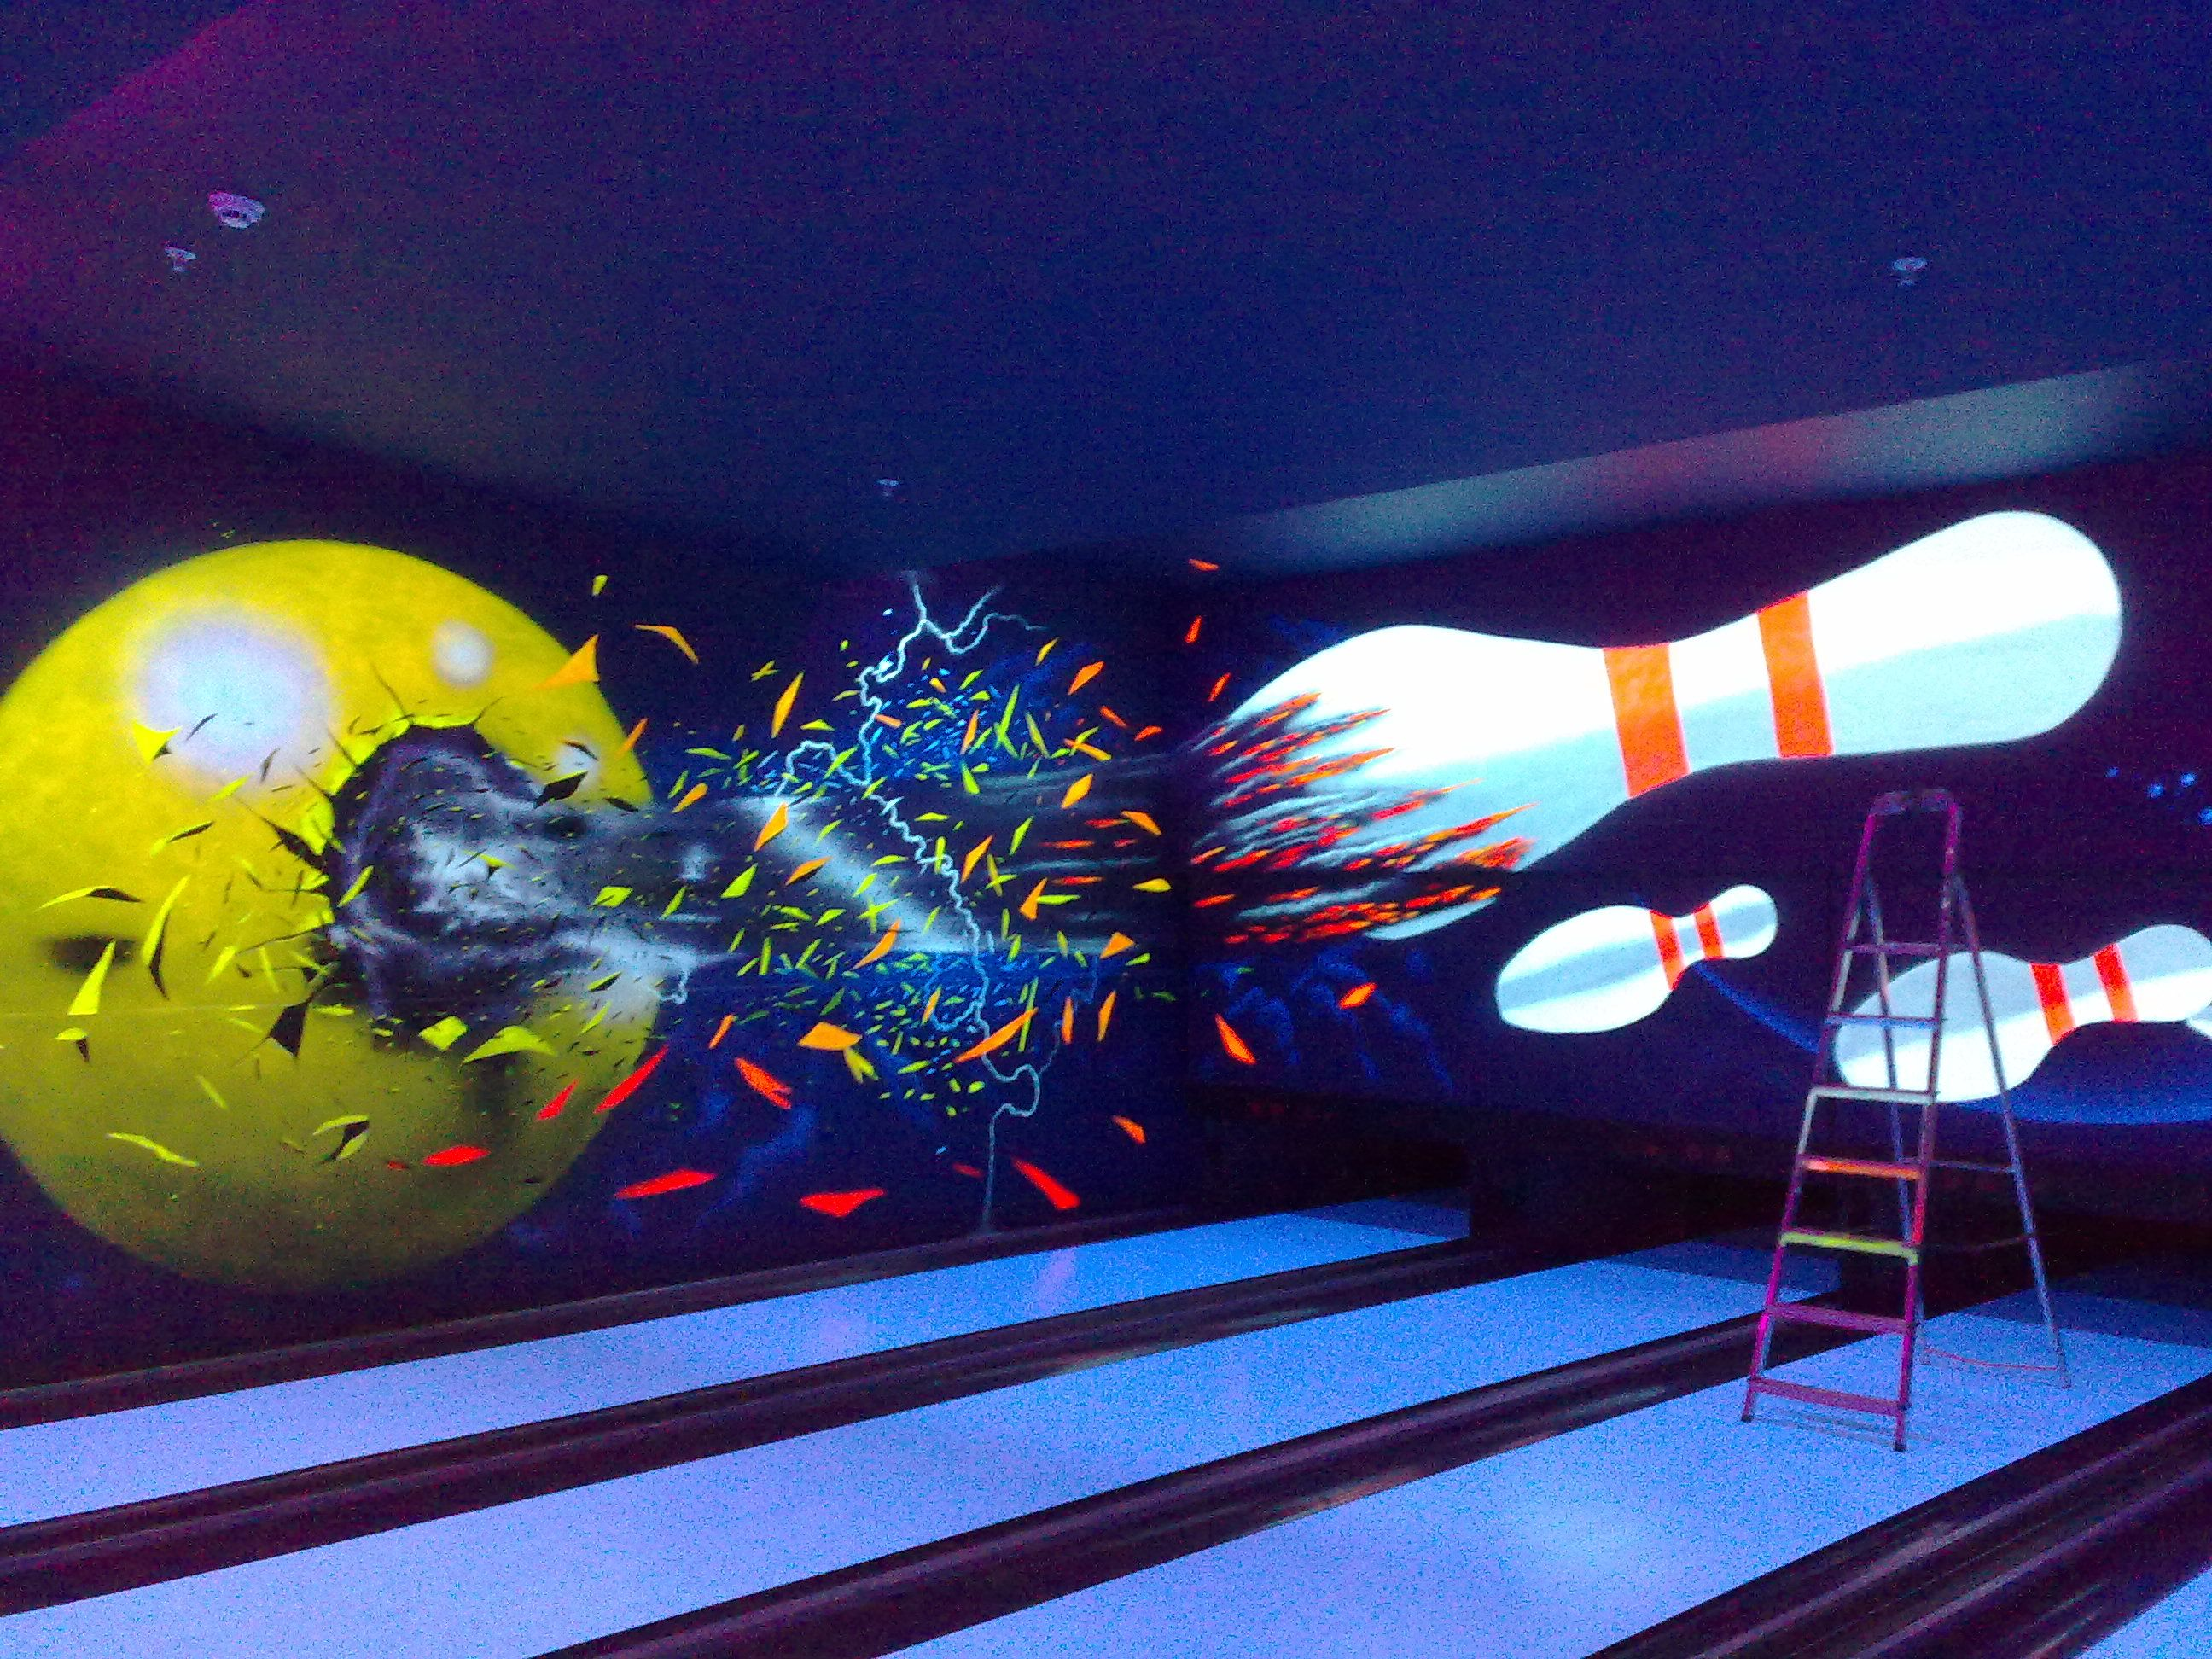 uv themed bowling alleys incorporate uv fluorescent paints and